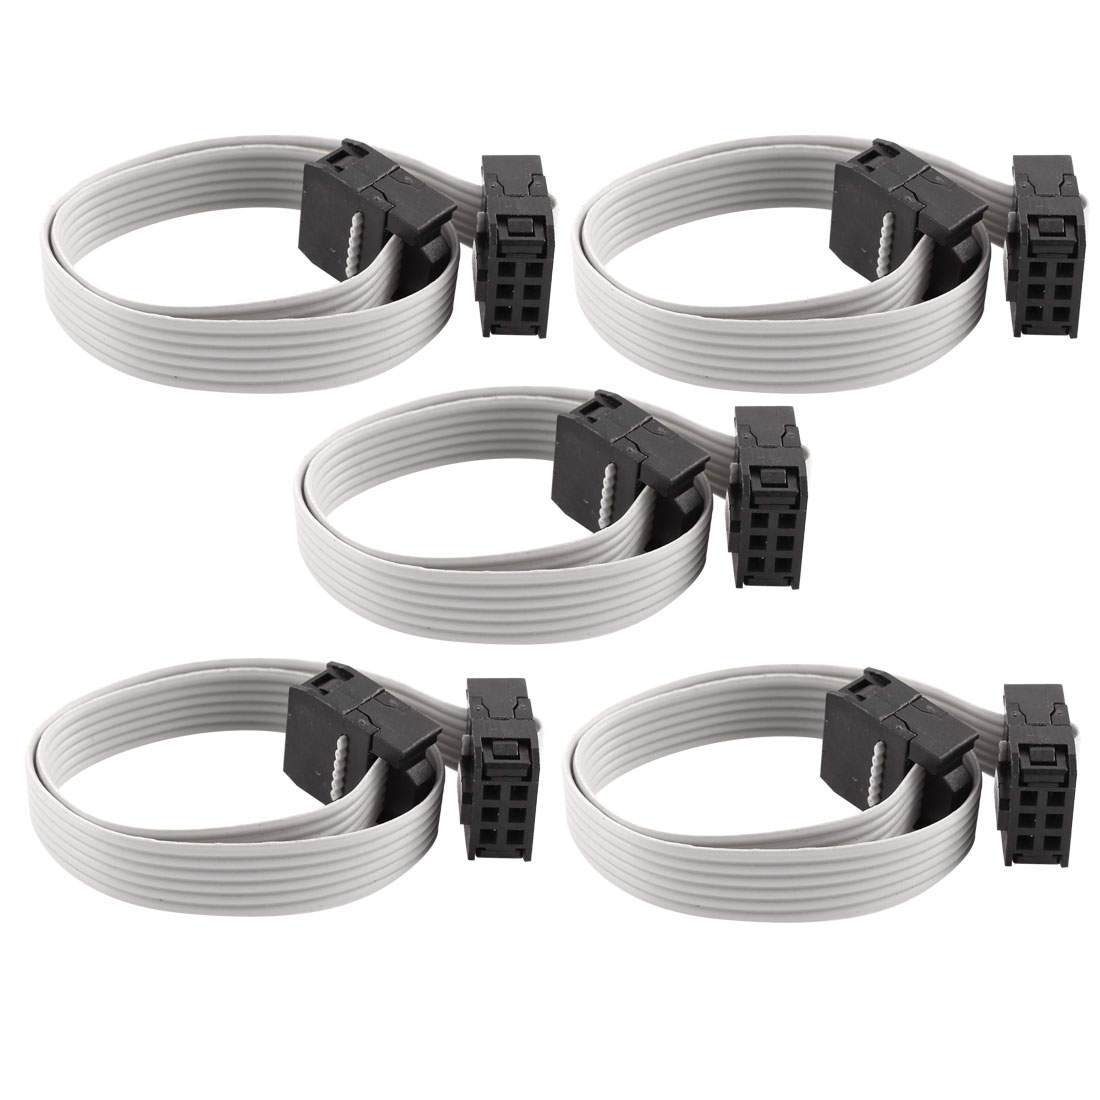 5 Pcs FC-6P IDC 6-Pin F/F Hard Drive Data Extension Wire Flat Ribbon Cable Connector 20cm Long for Motherboard